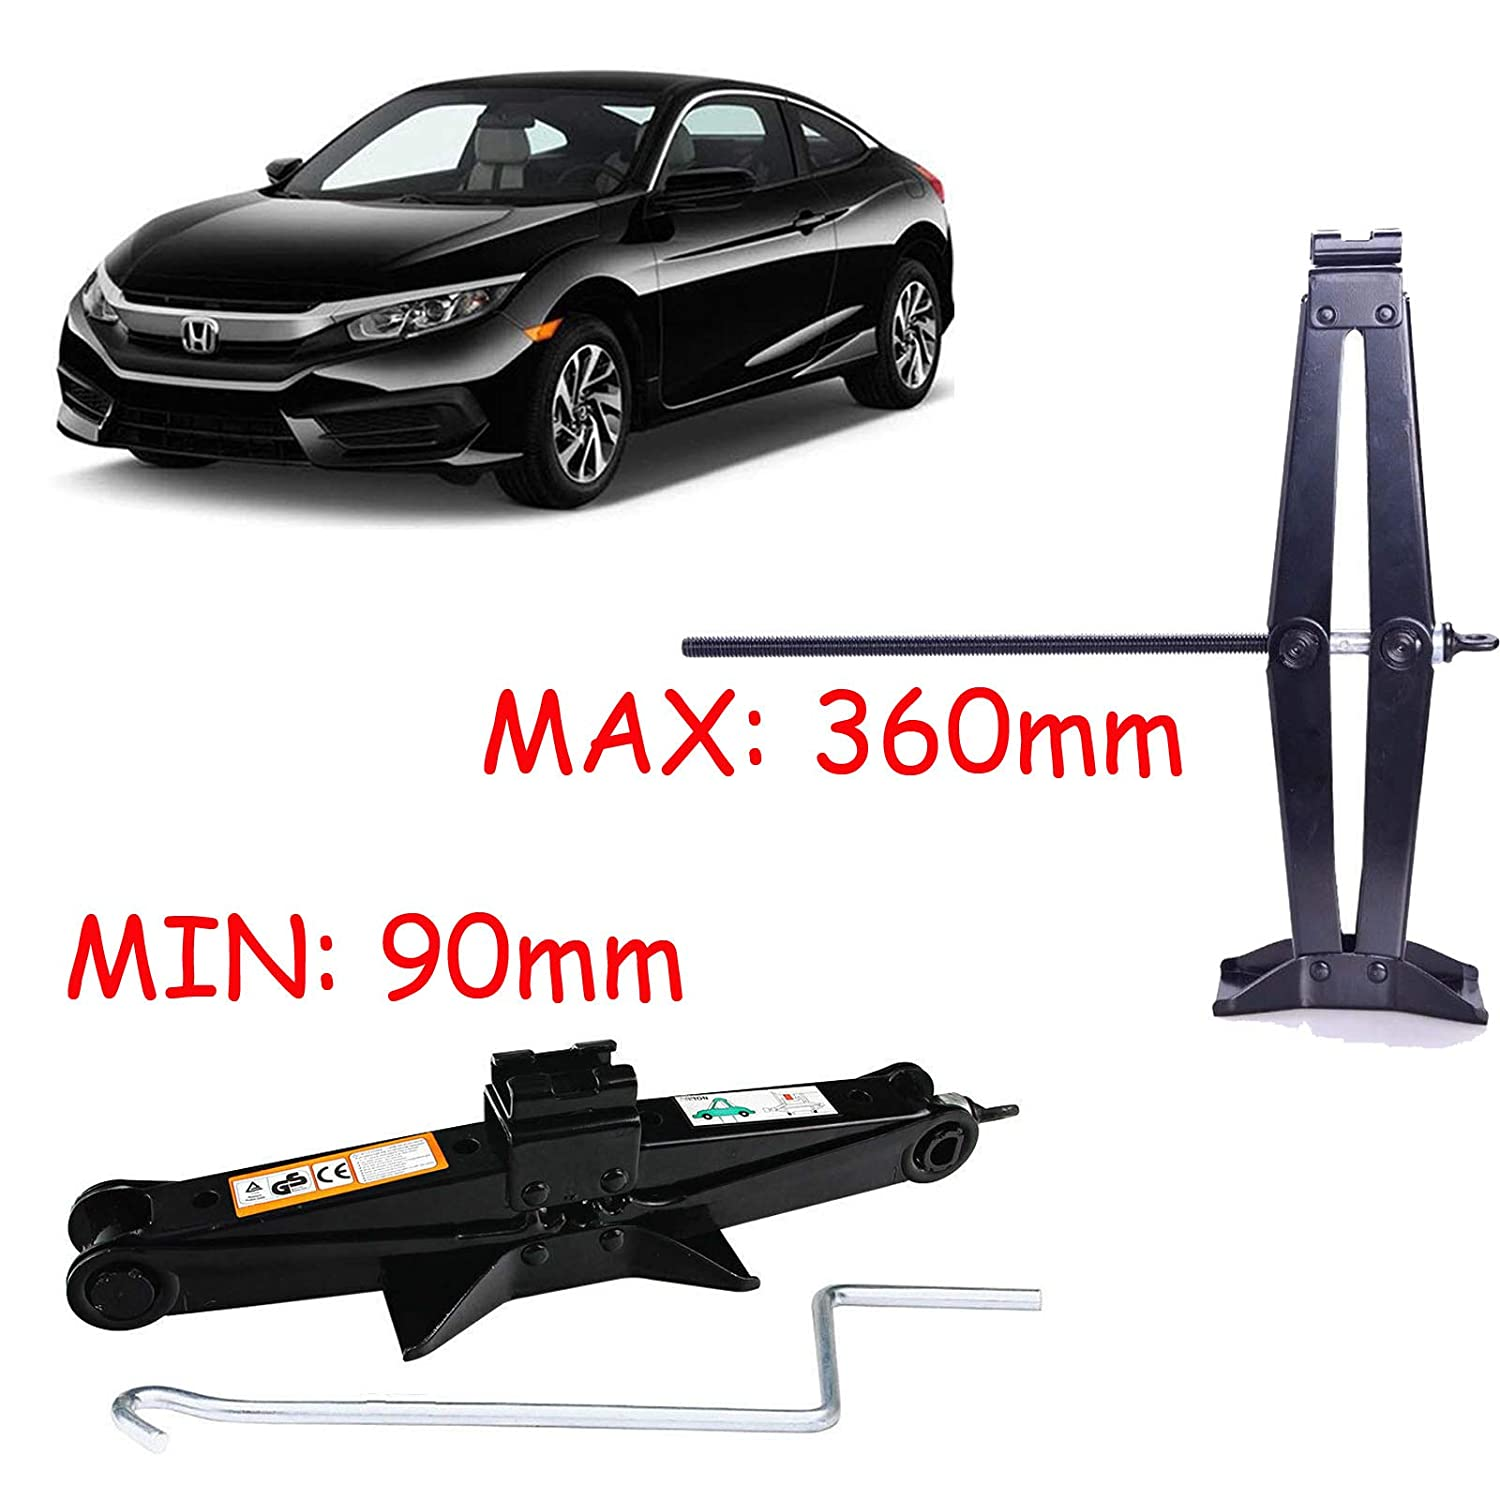 Set of 2 AutoBaBa Heavy Duty 3 Tonne Axle Stands for Car Caravan Van Vehicle Stand Lifting